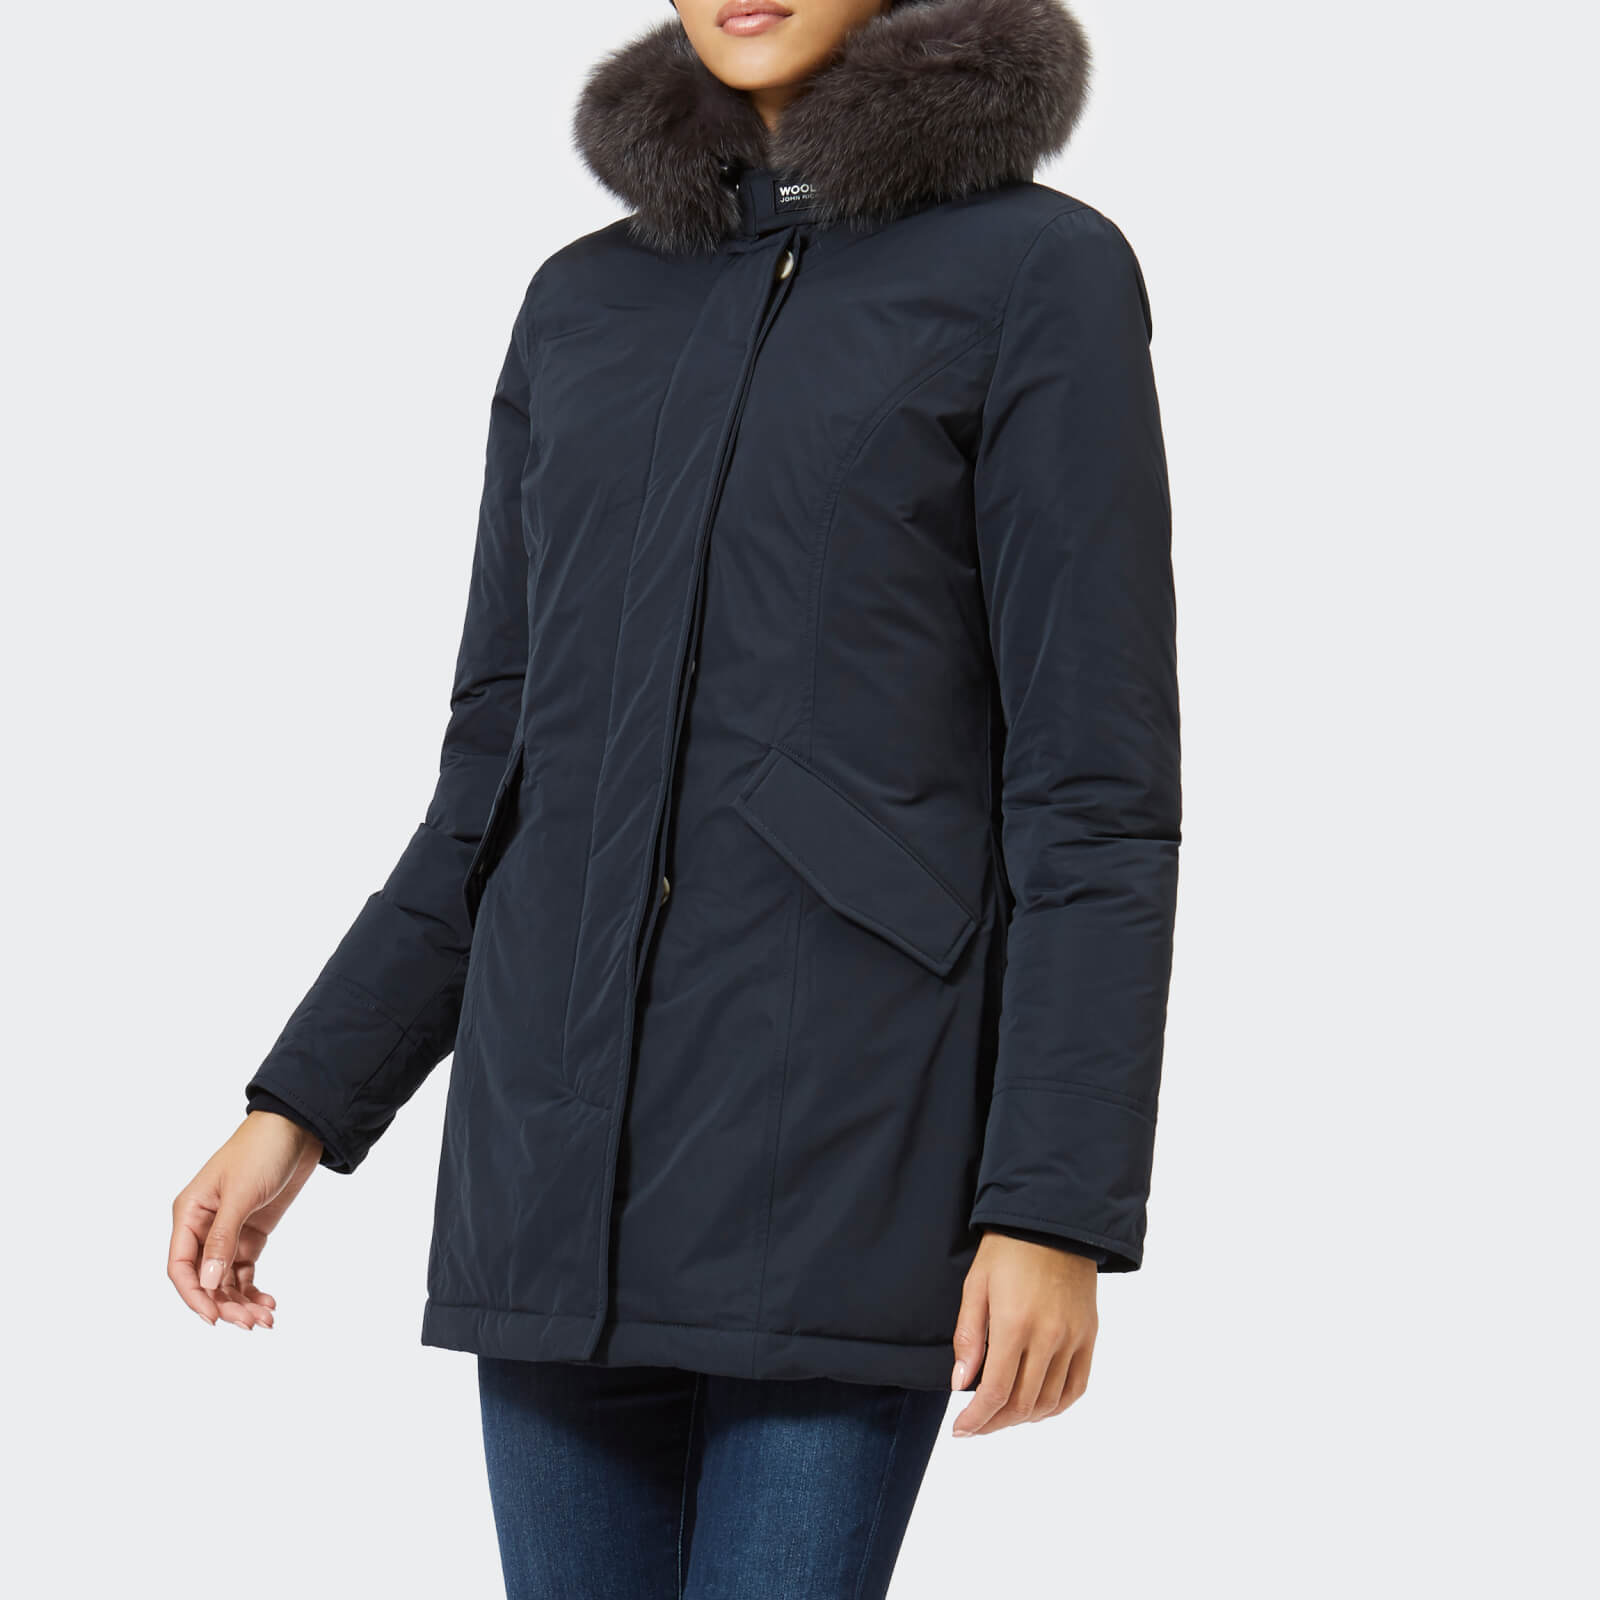 online store e37c3 83583 Woolrich Women's Luxury Arctic Parka - Midnight Navy